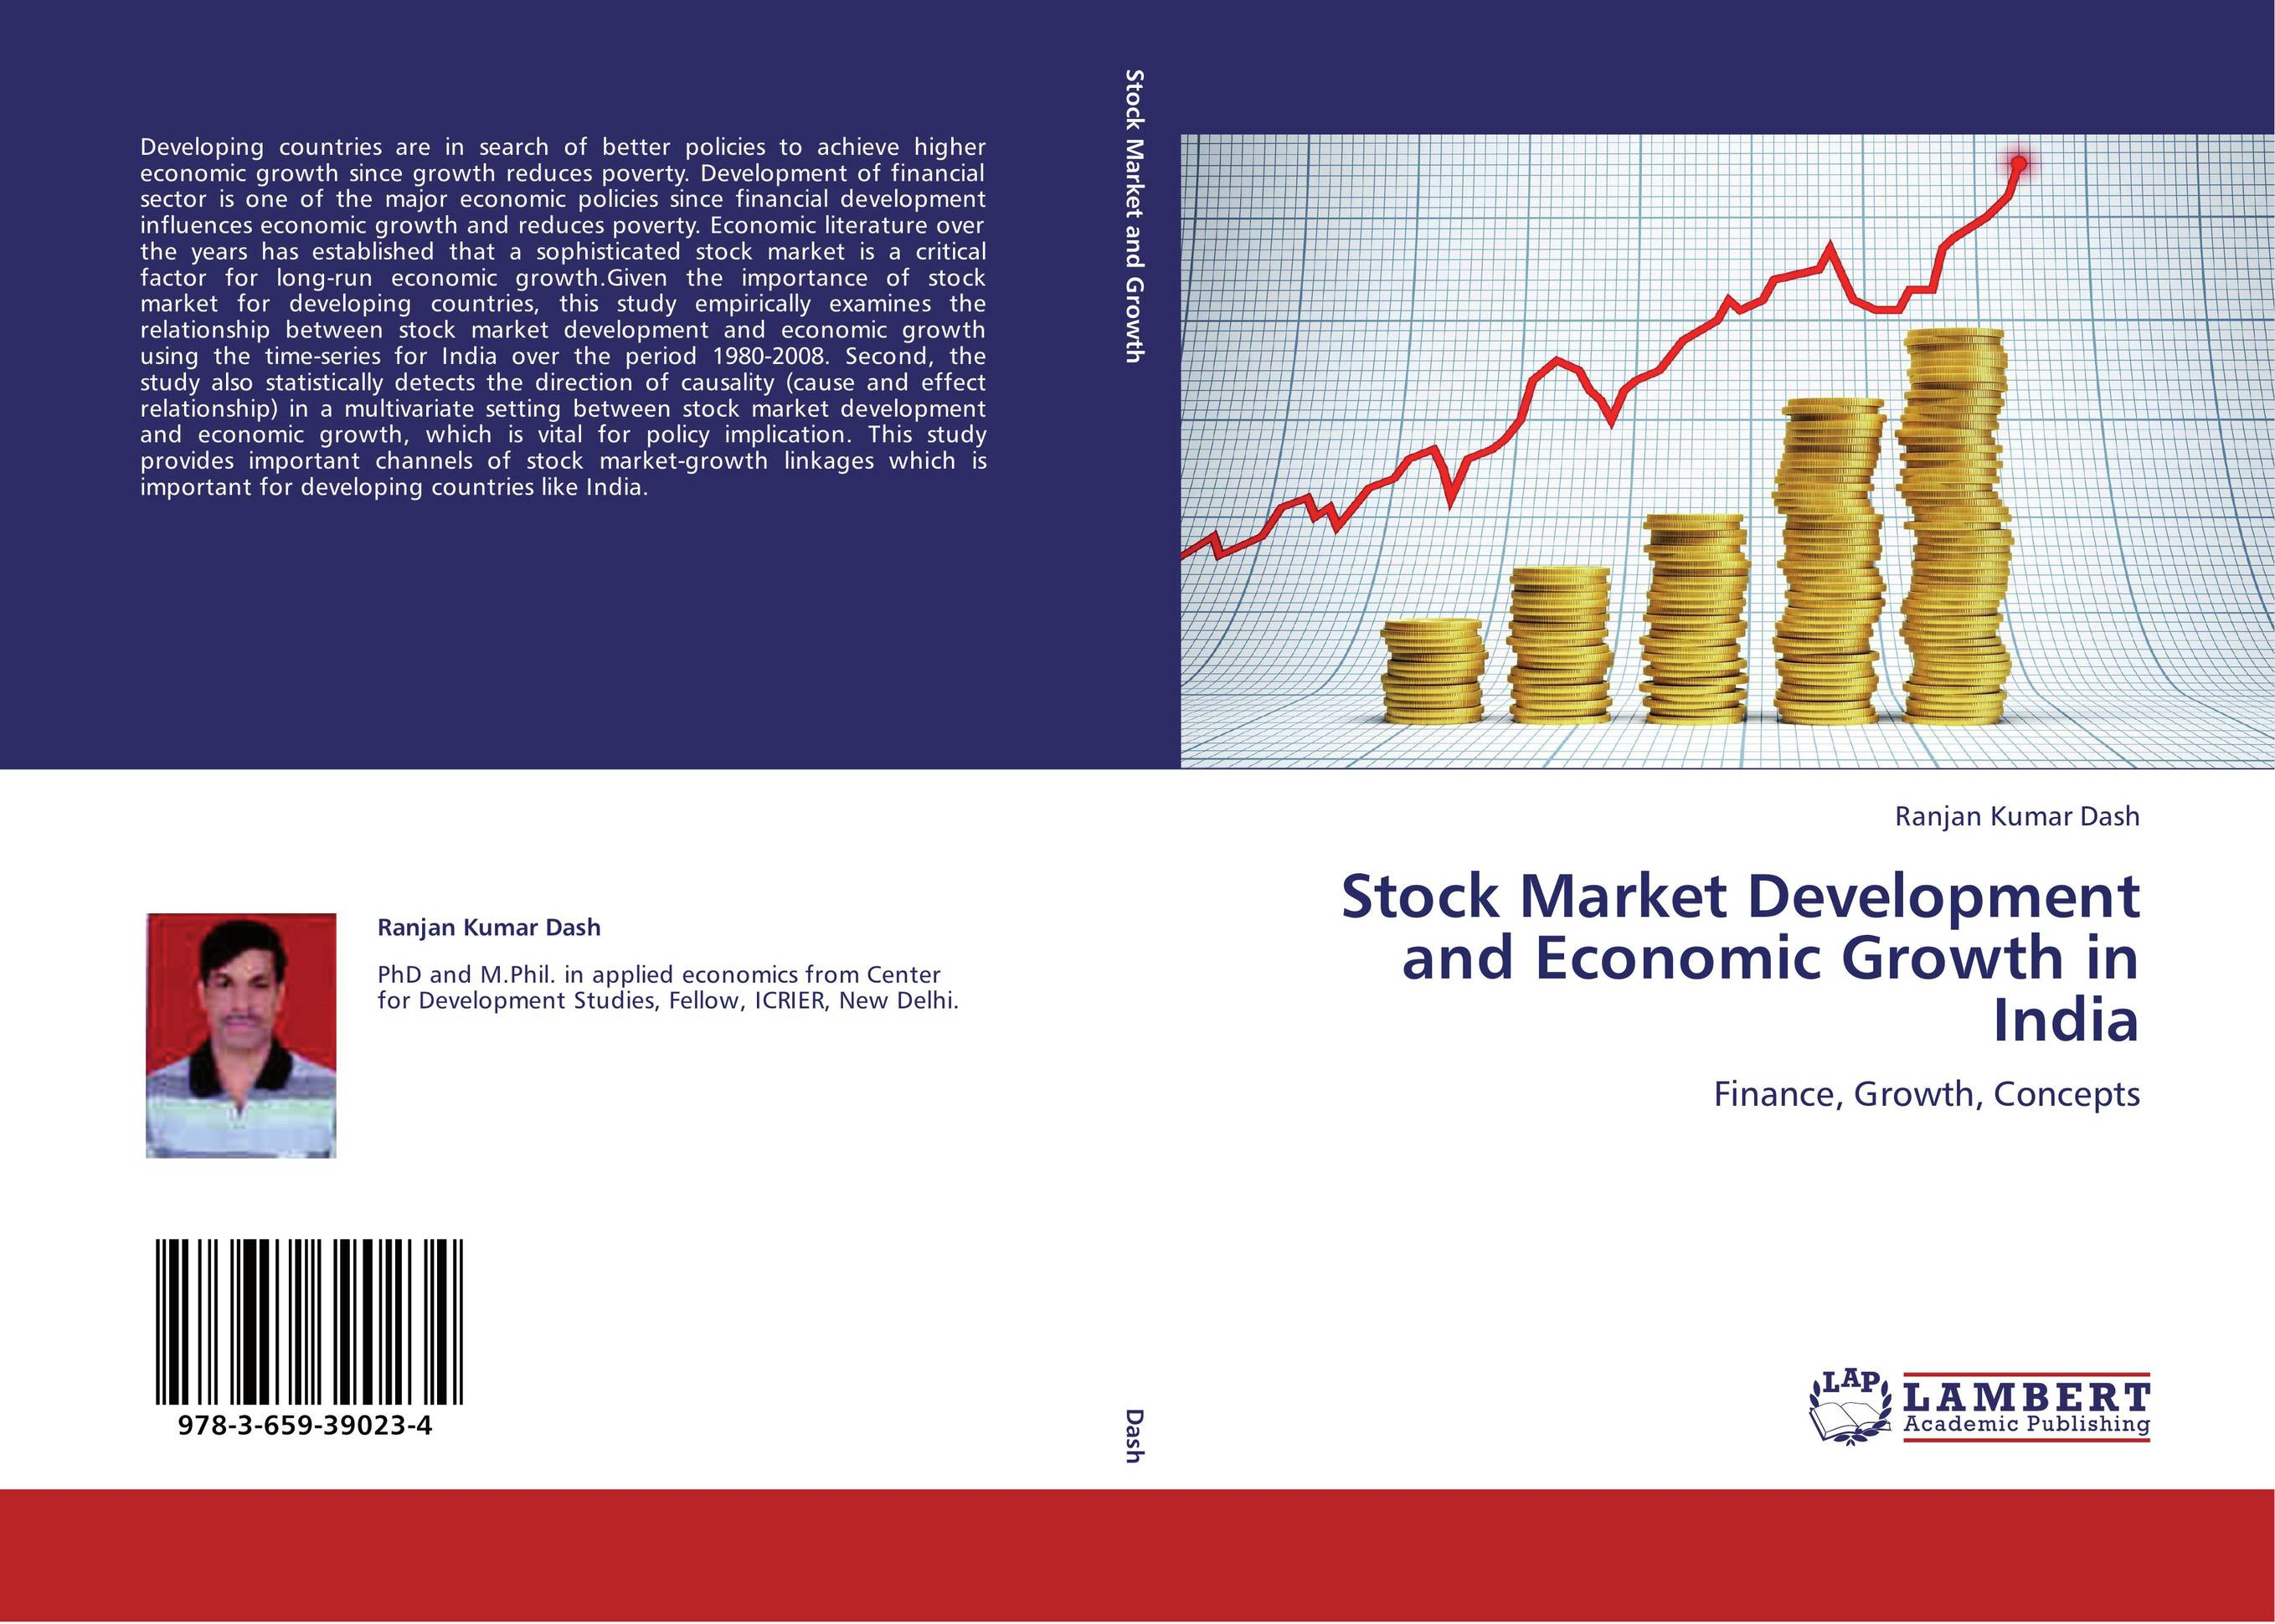 phd thesis on financial development and economic growth This is an example of essay about economic growth and financial development for students free sample research paper on economics and finance topic.